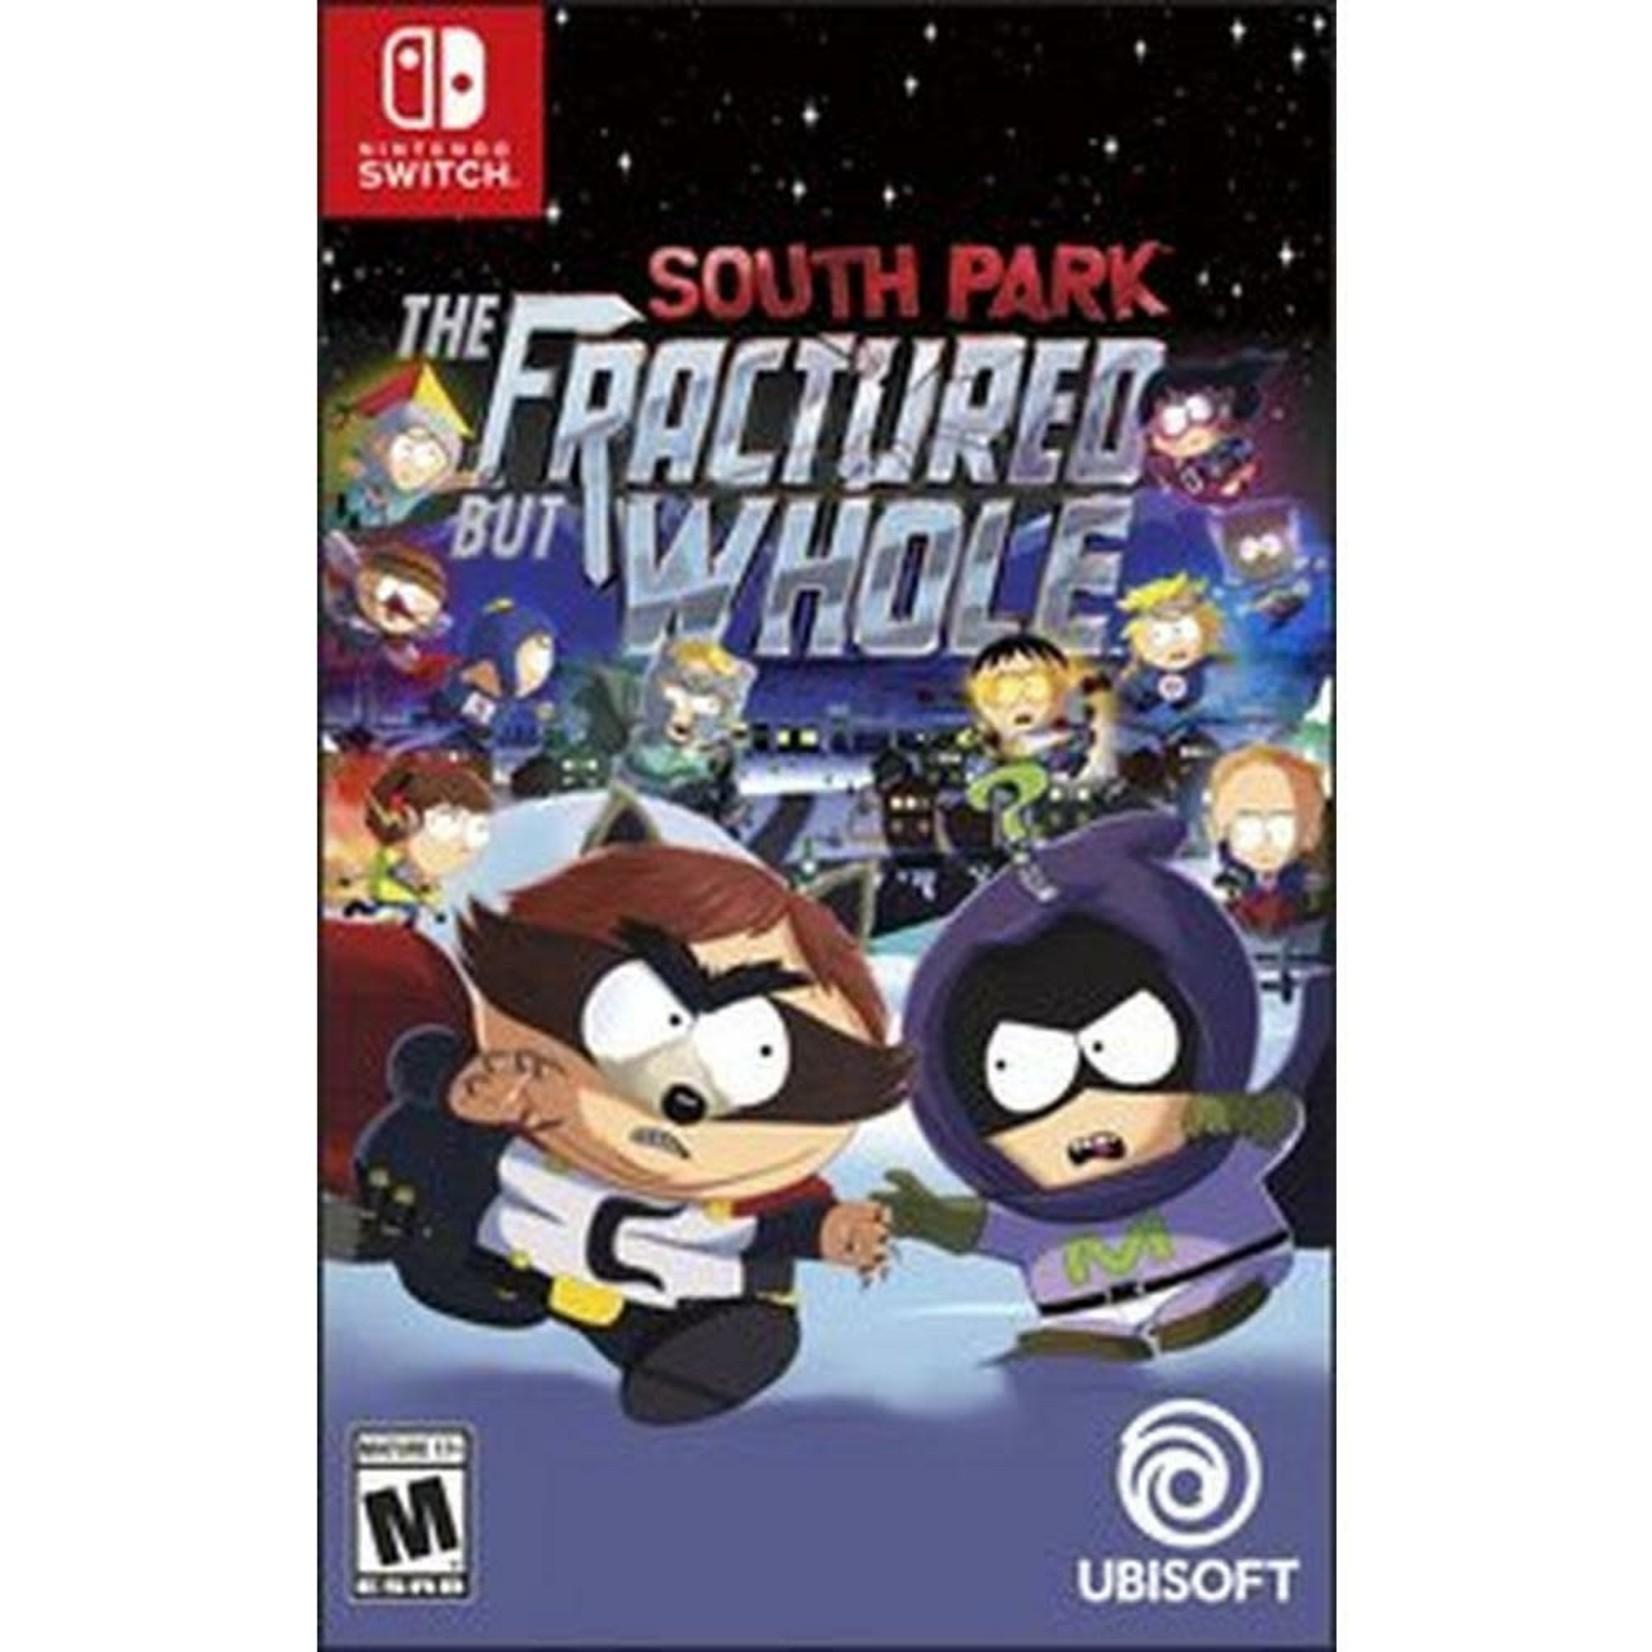 SWITCHU-South Park: The Fractured But Whole